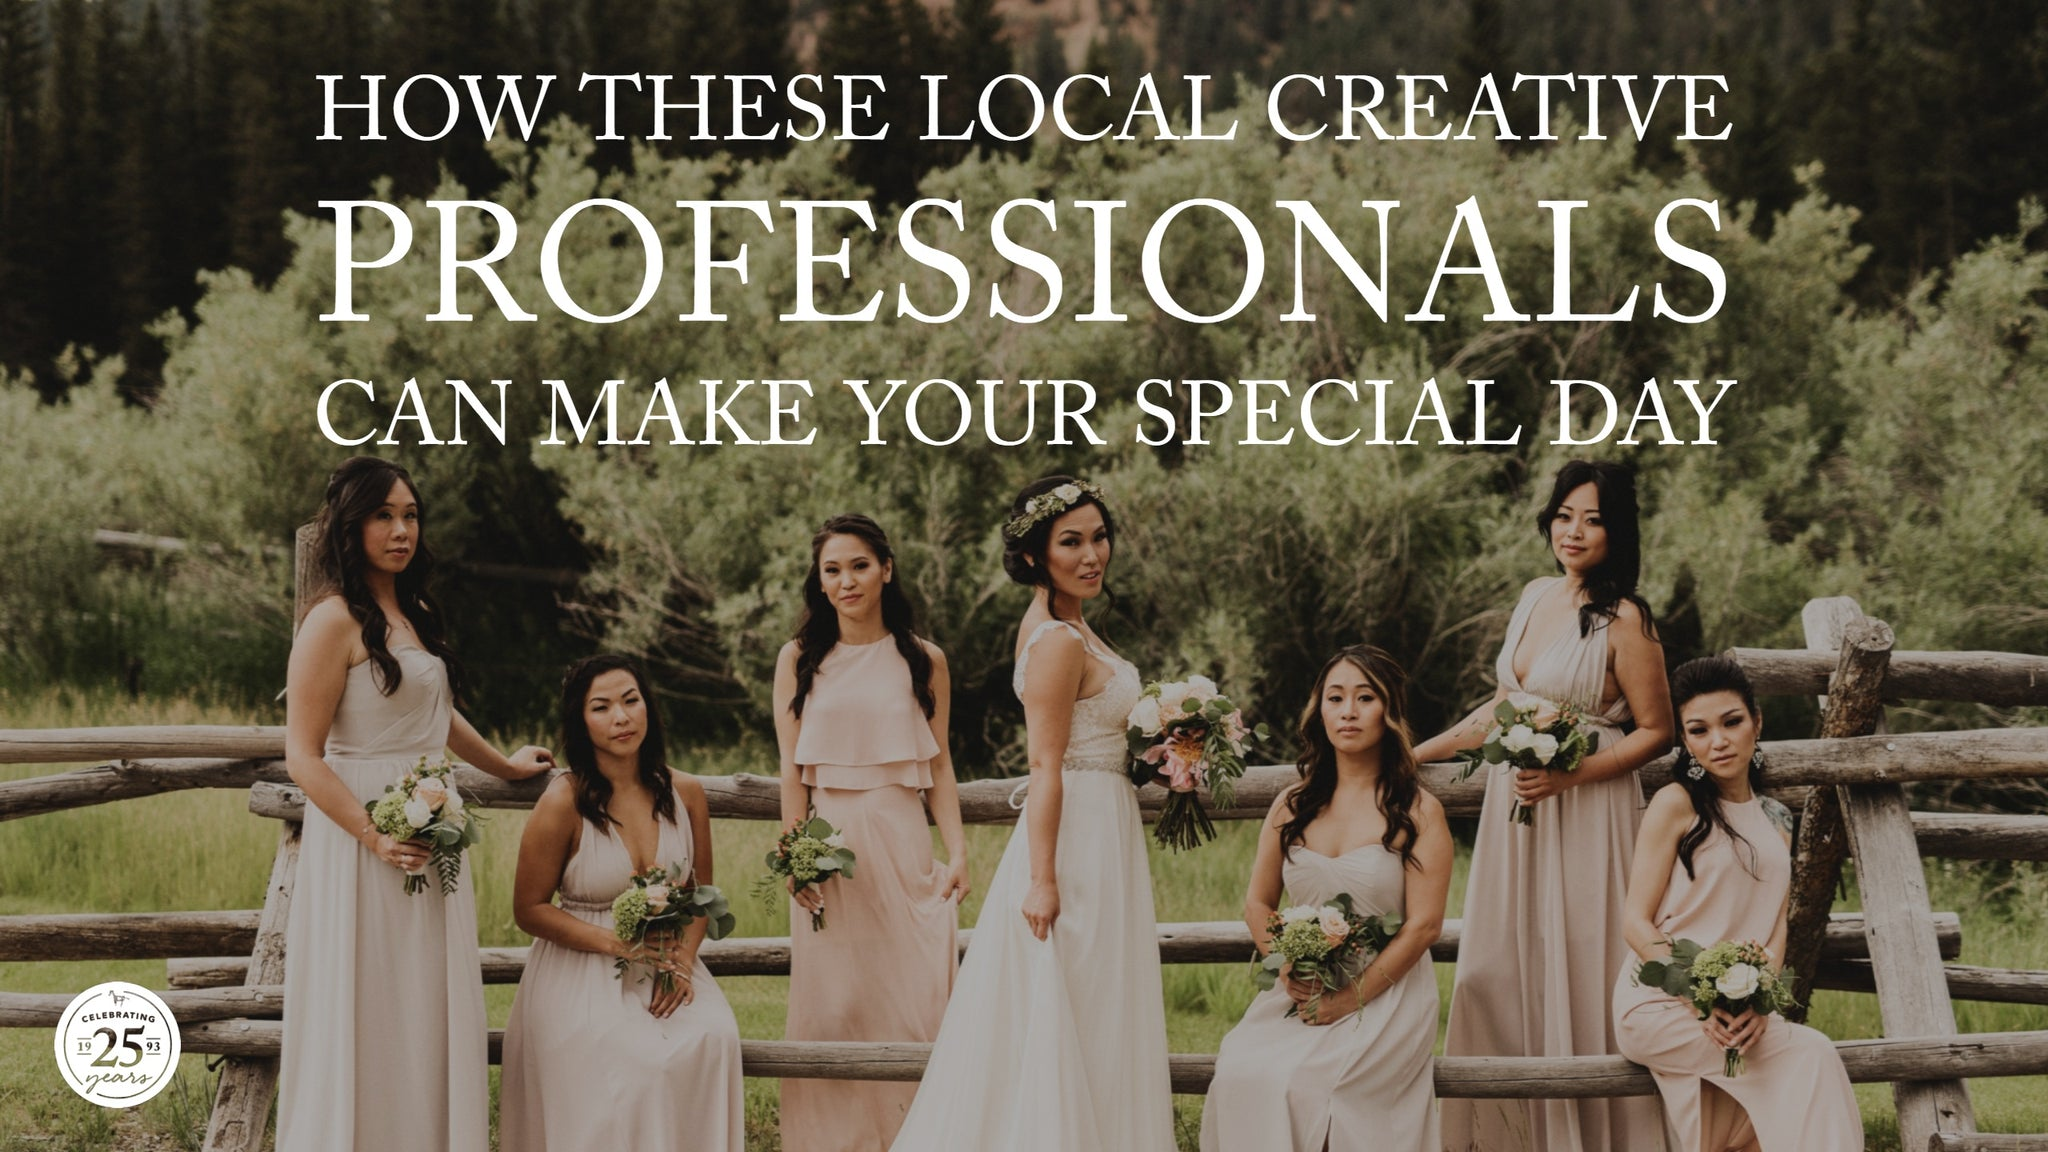 Montana Wedding Planning: How These Local Creative Professionals Can Make Your Special Day